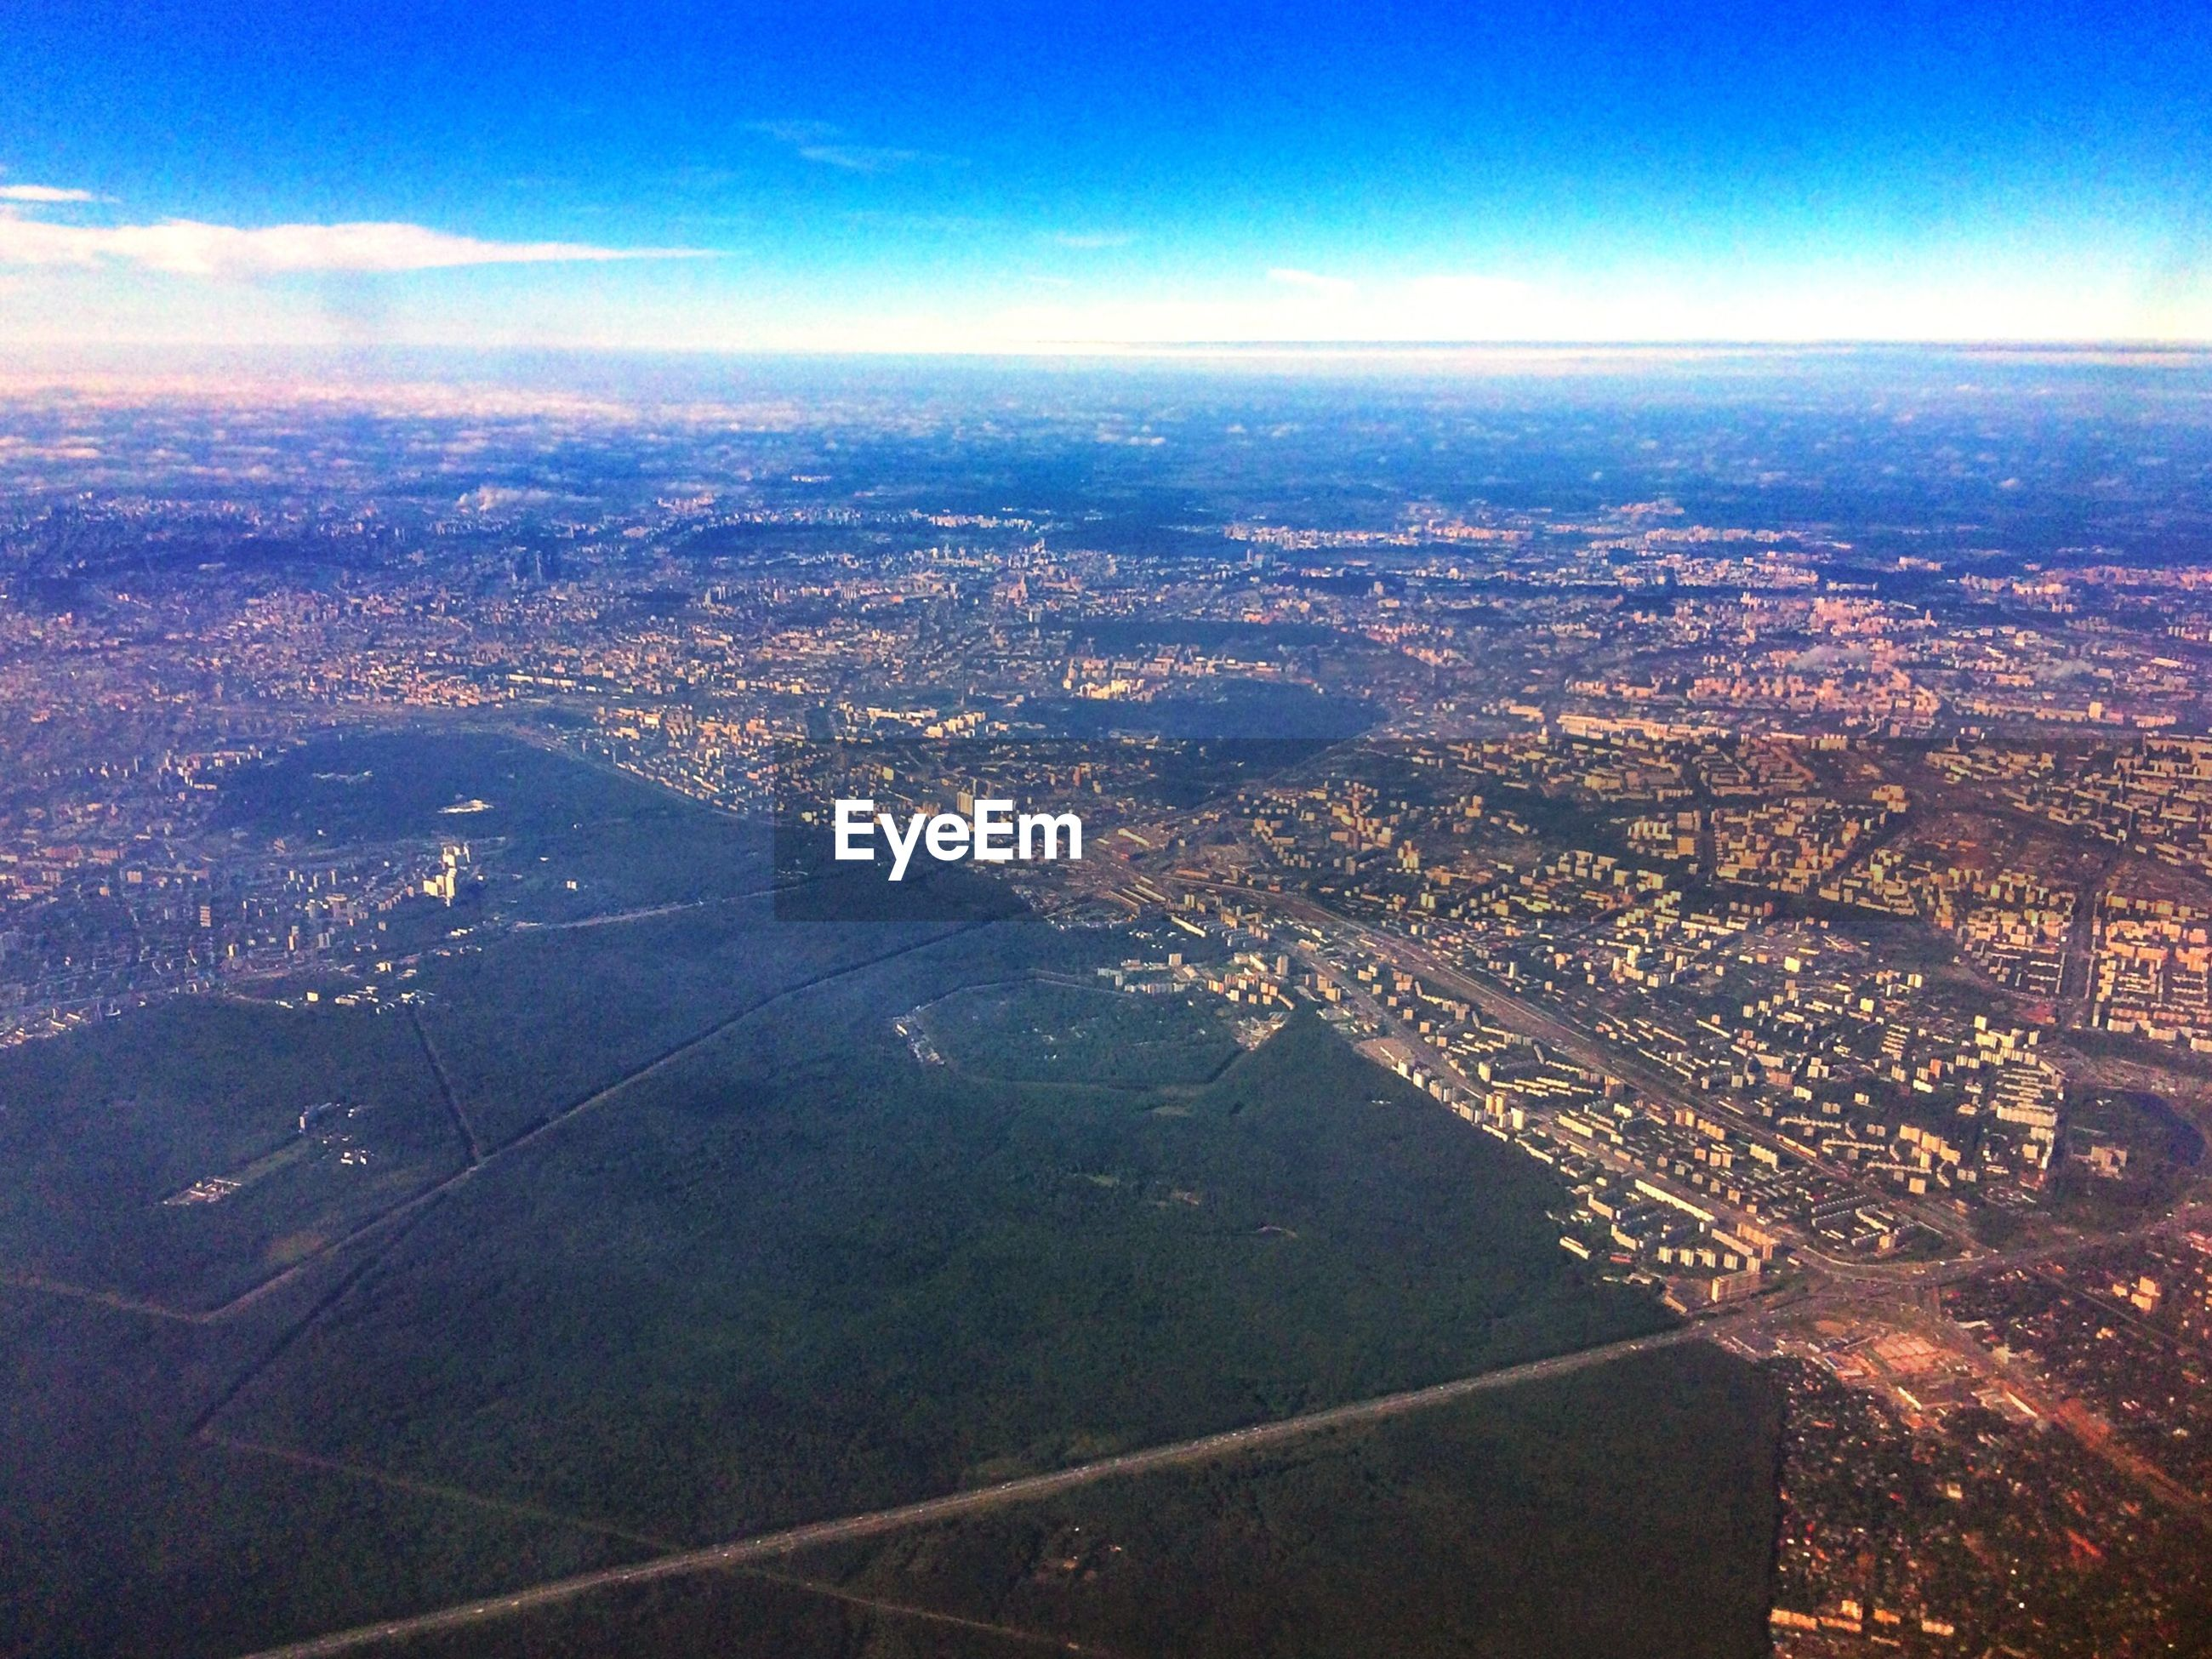 AERIAL VIEW OF LANDSCAPE AGAINST SKY IN CITY